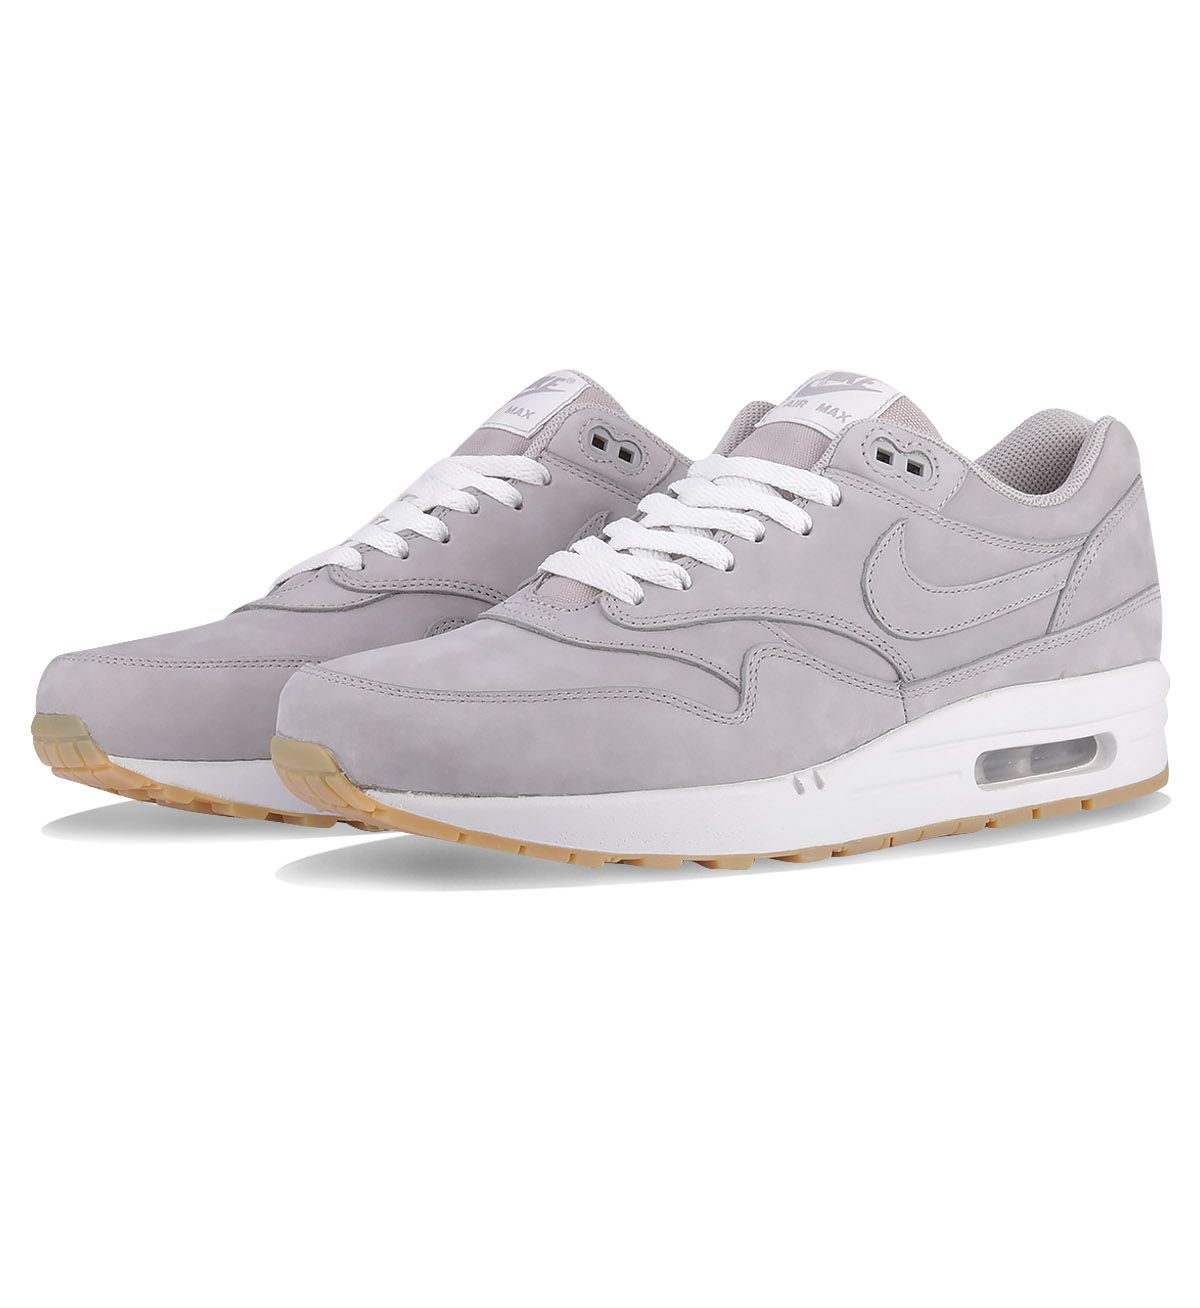 sneakers for cheap 09a81 75f9a Product Name  Nike Air Max 1 Premium SC WMNS AA0512-002 Specifications   Living up to the premium name, these certainly are a sterling p…   Sport  shoes